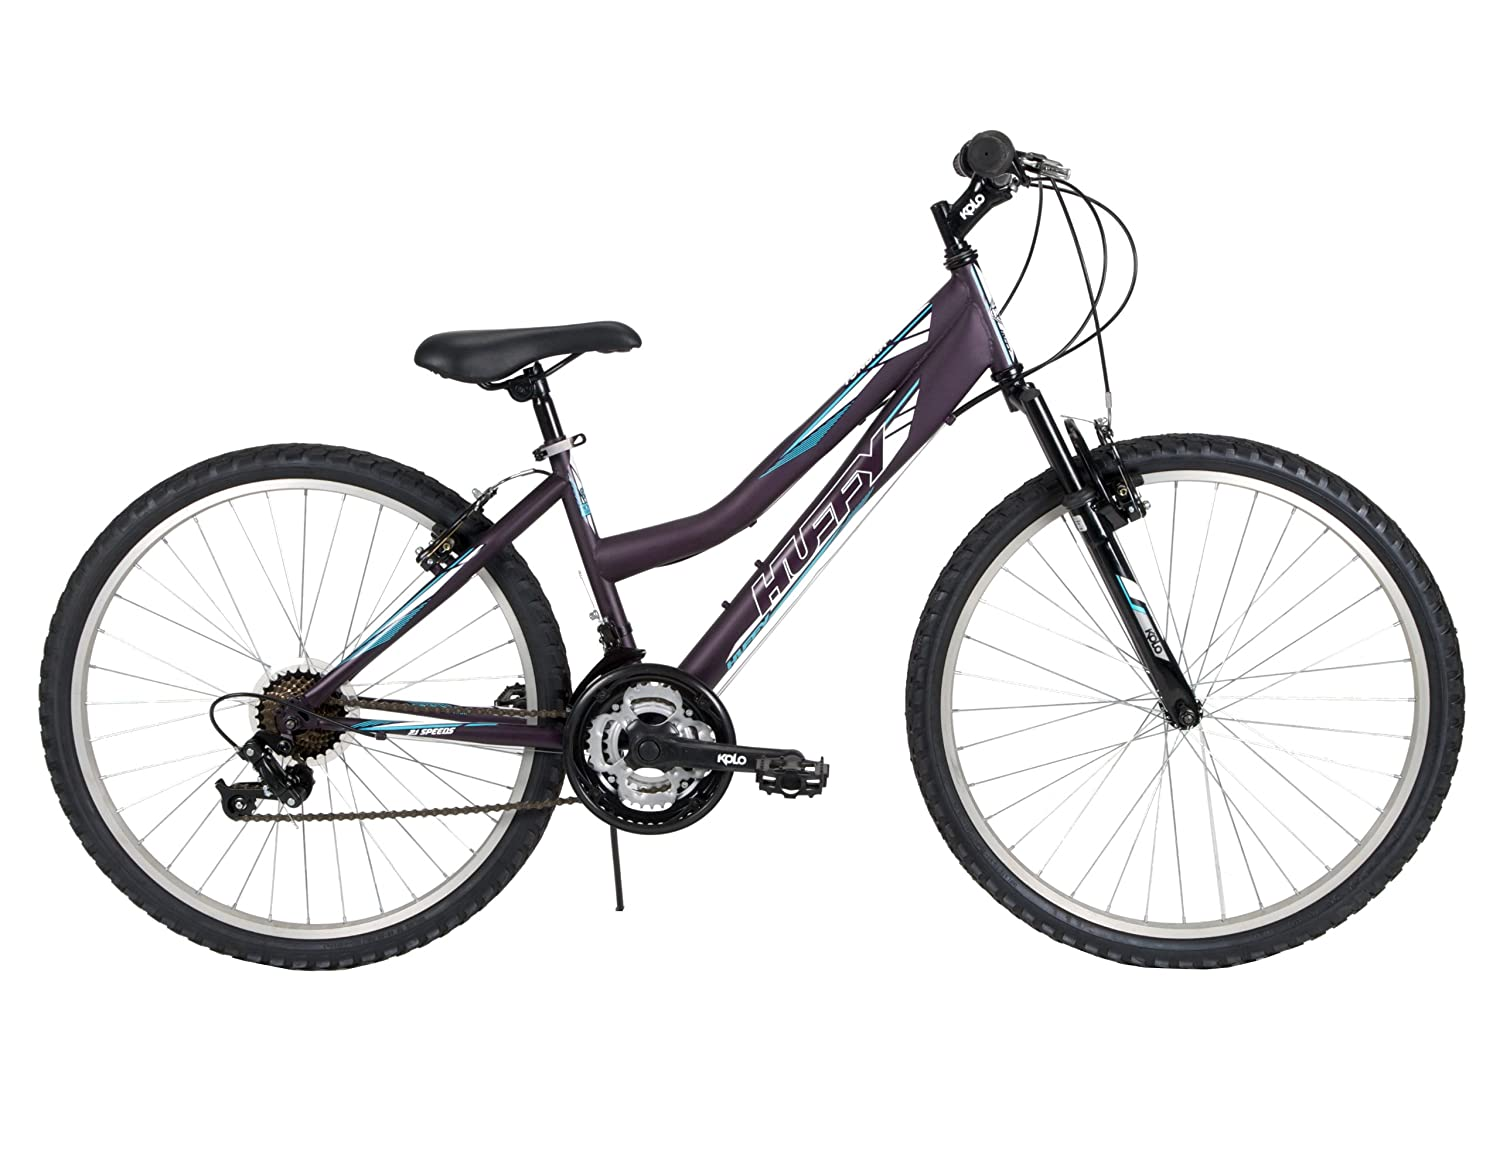 Bikes For Women 26 Inch Huffy Bicycle Company Women s